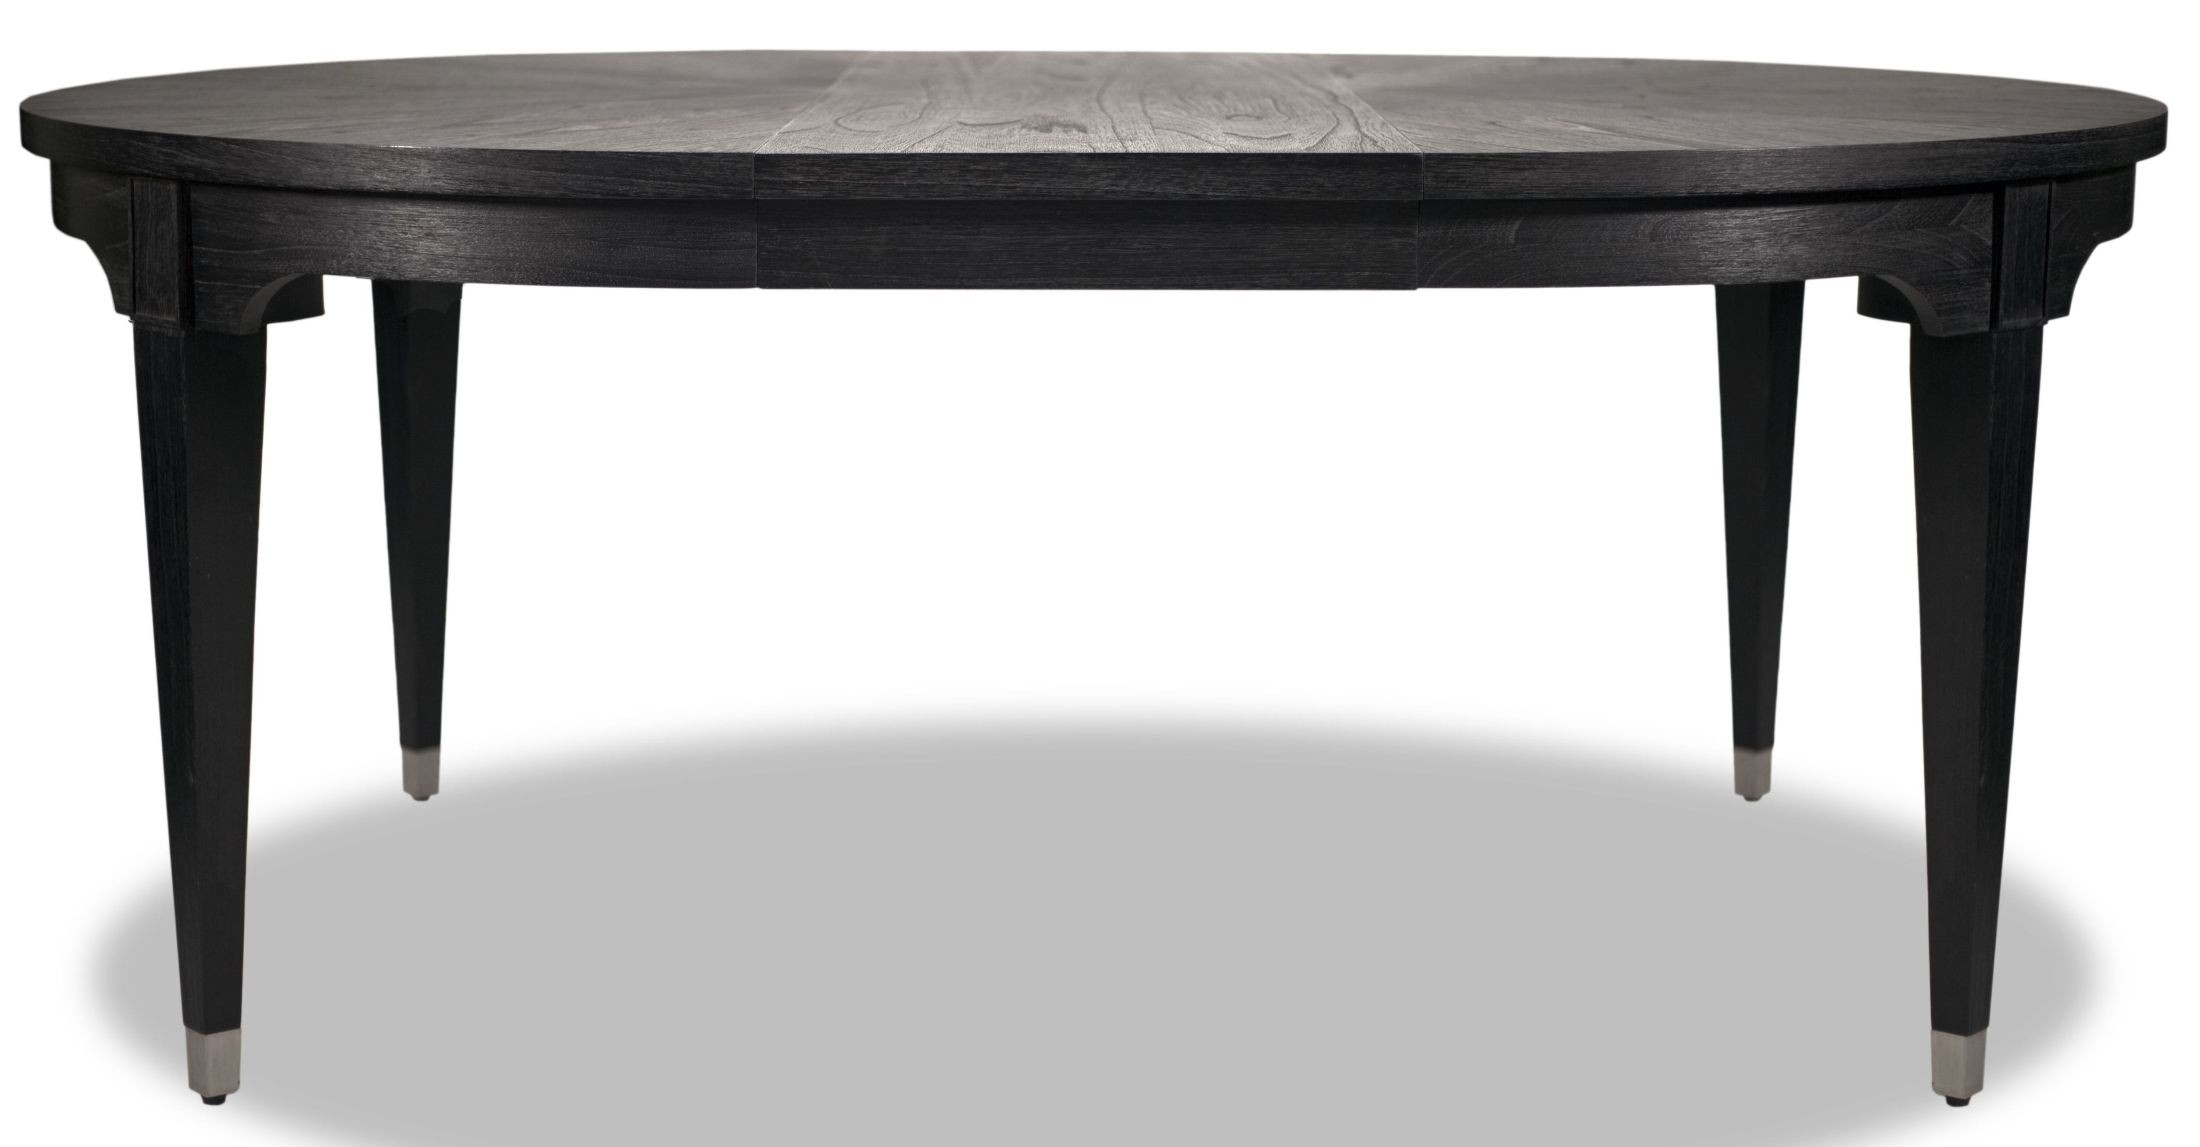 Atherton Onyx Extension Dining Table from Brownstone  : at303on1 from colemanfurniture.com size 2200 x 1147 jpeg 150kB